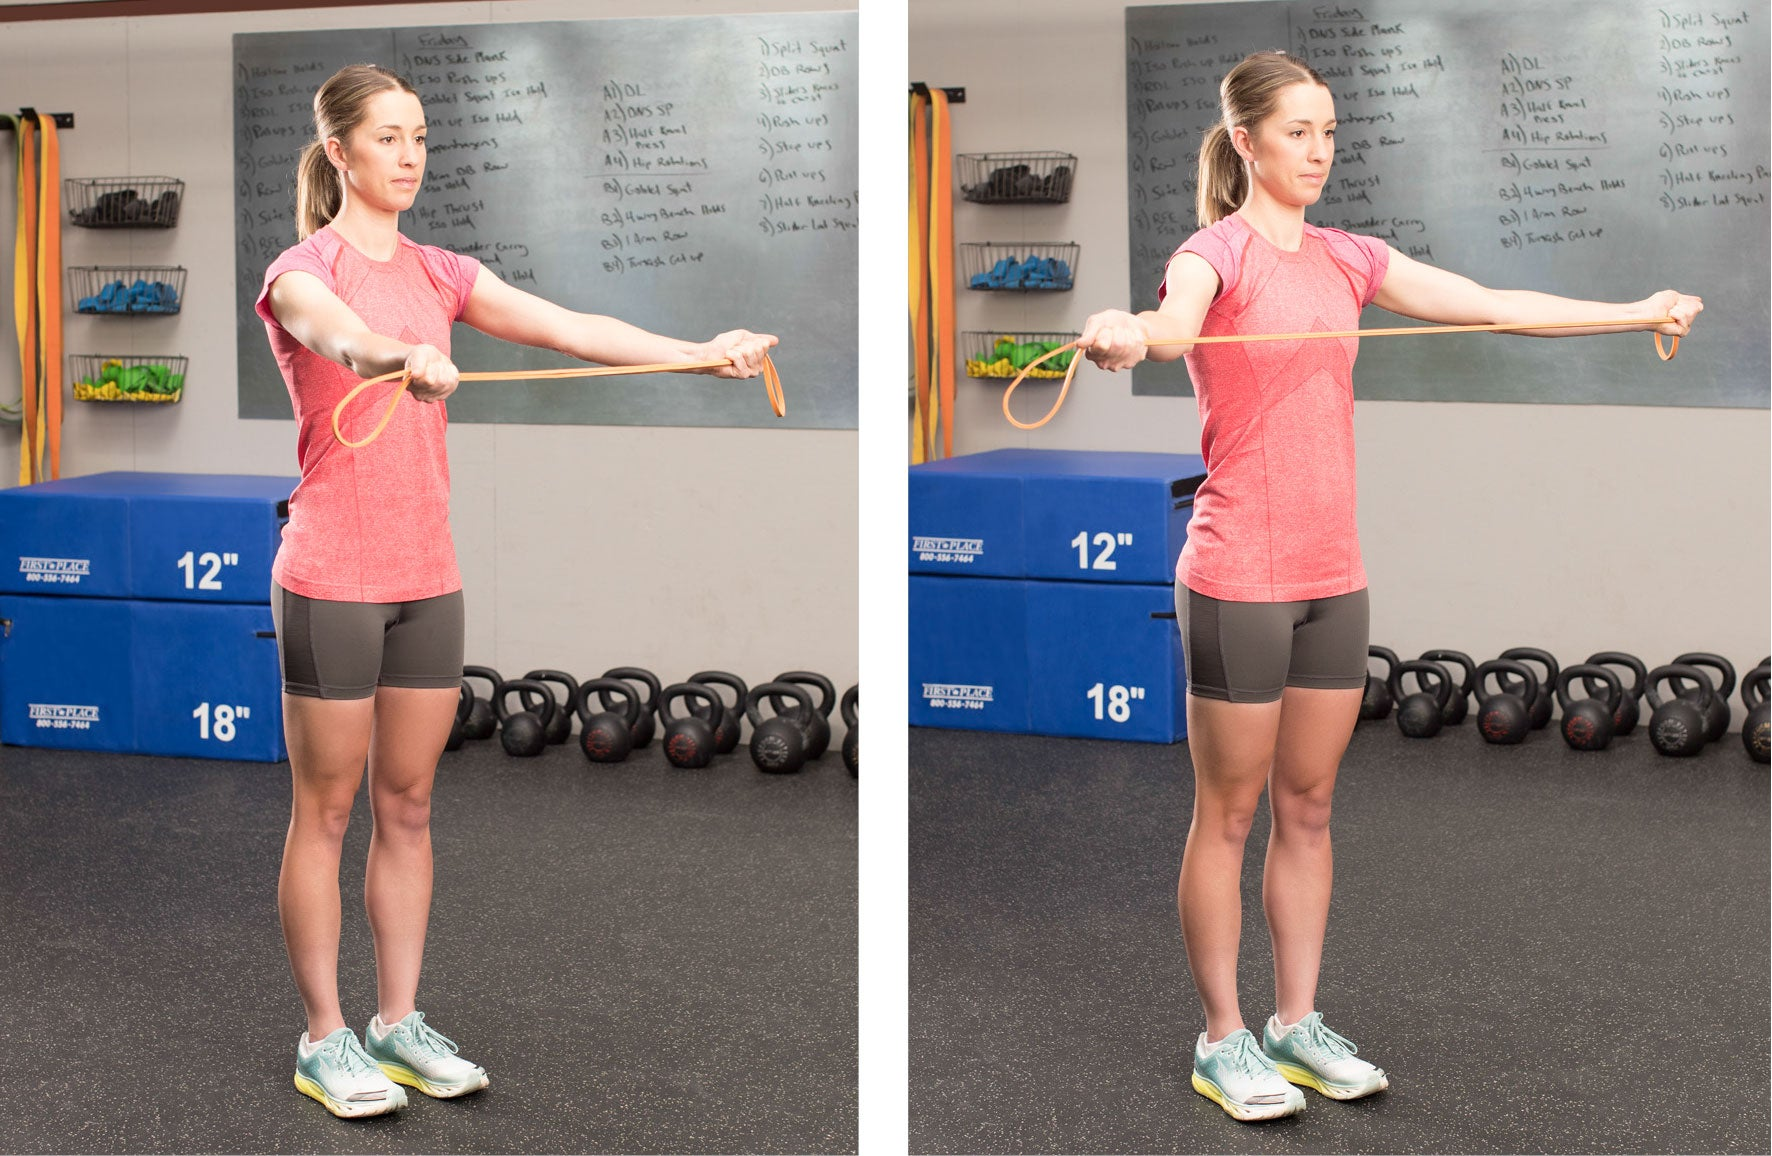 Pull Aparts exercise